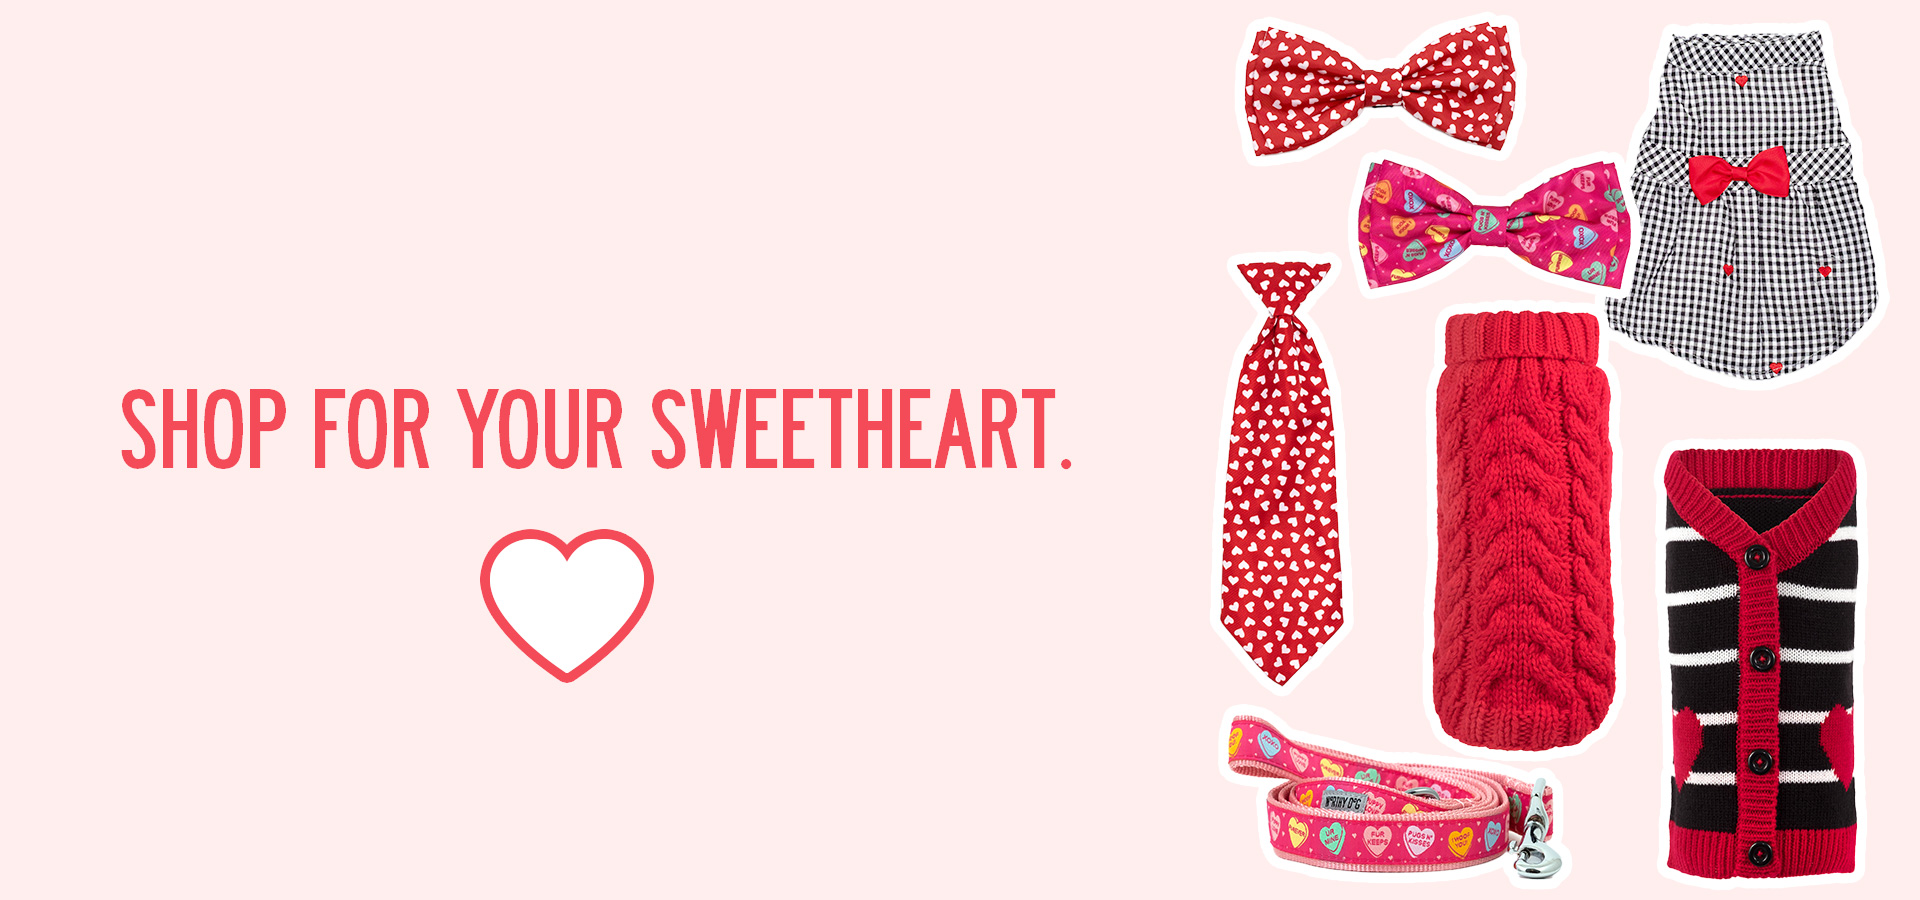 Shop for your sweetheart.